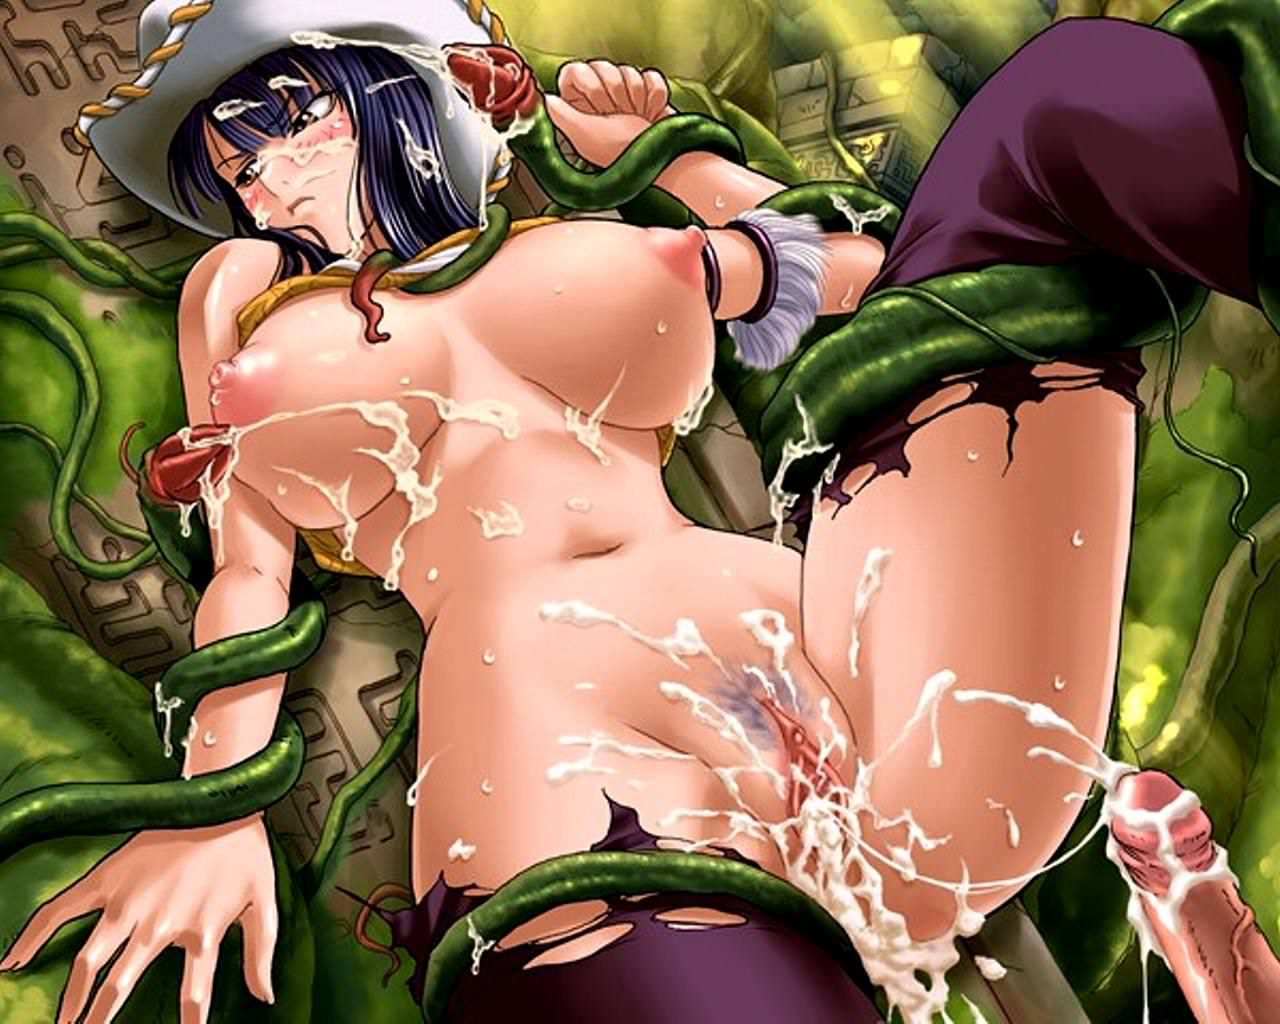 Hardcore hentaii hentai gallery